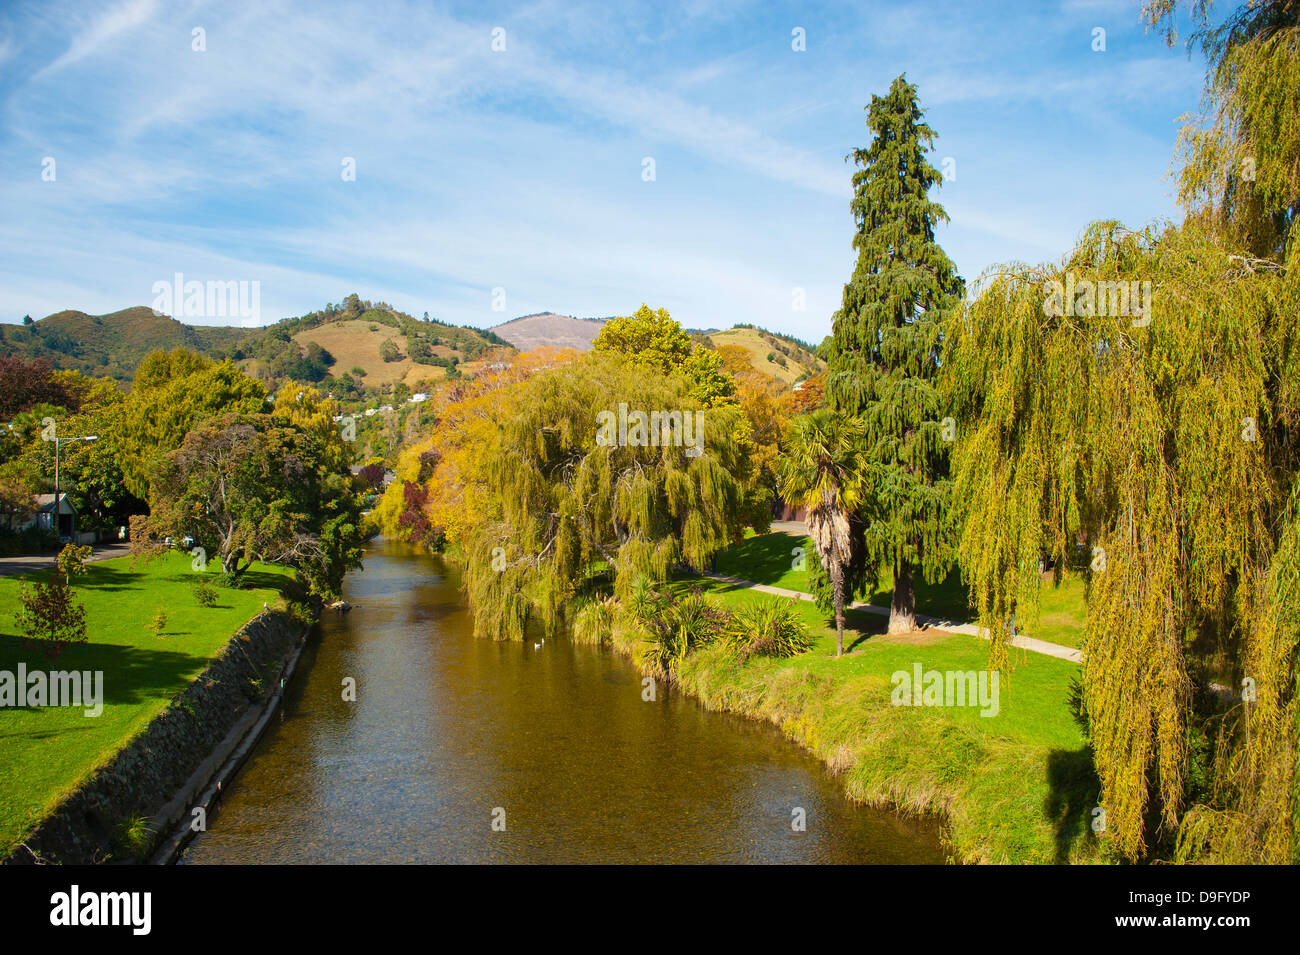 Nelson town centre, Nelson, South Island, New Zealand - Stock Image